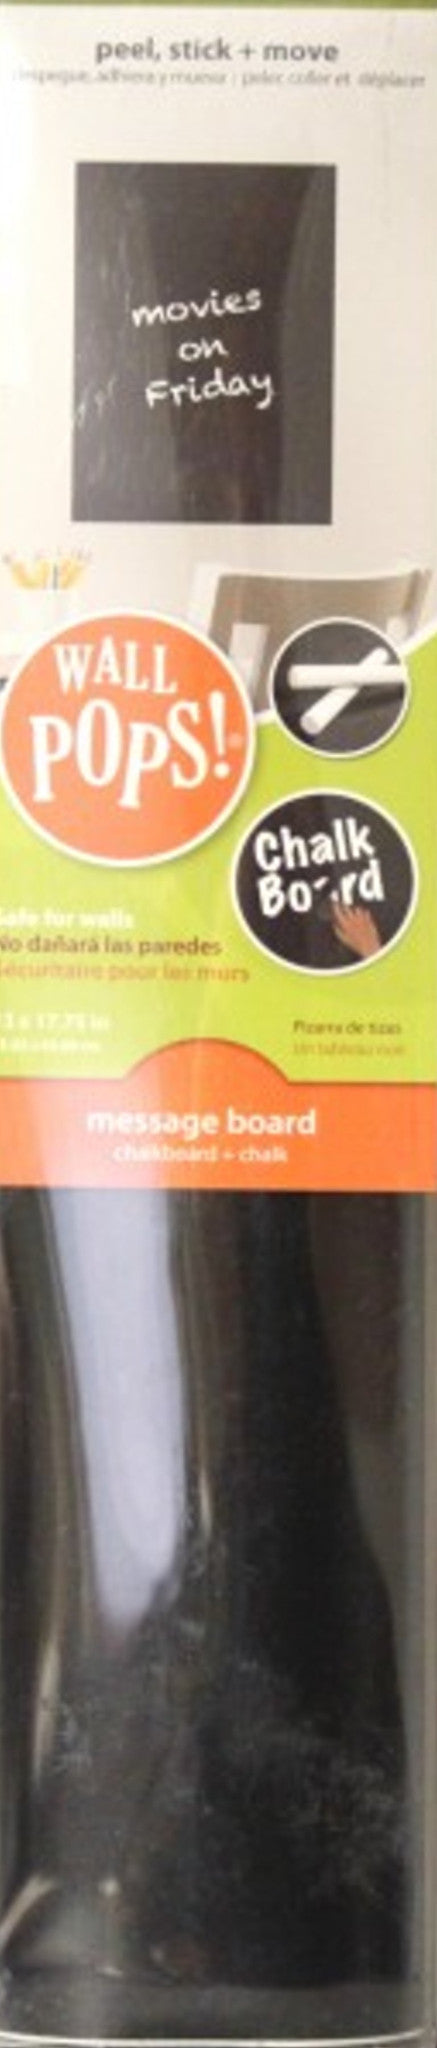 Brewster Home Fashions Wall Pops Message Board Chalkboard + Chalk - SCRAPBOOKFARE